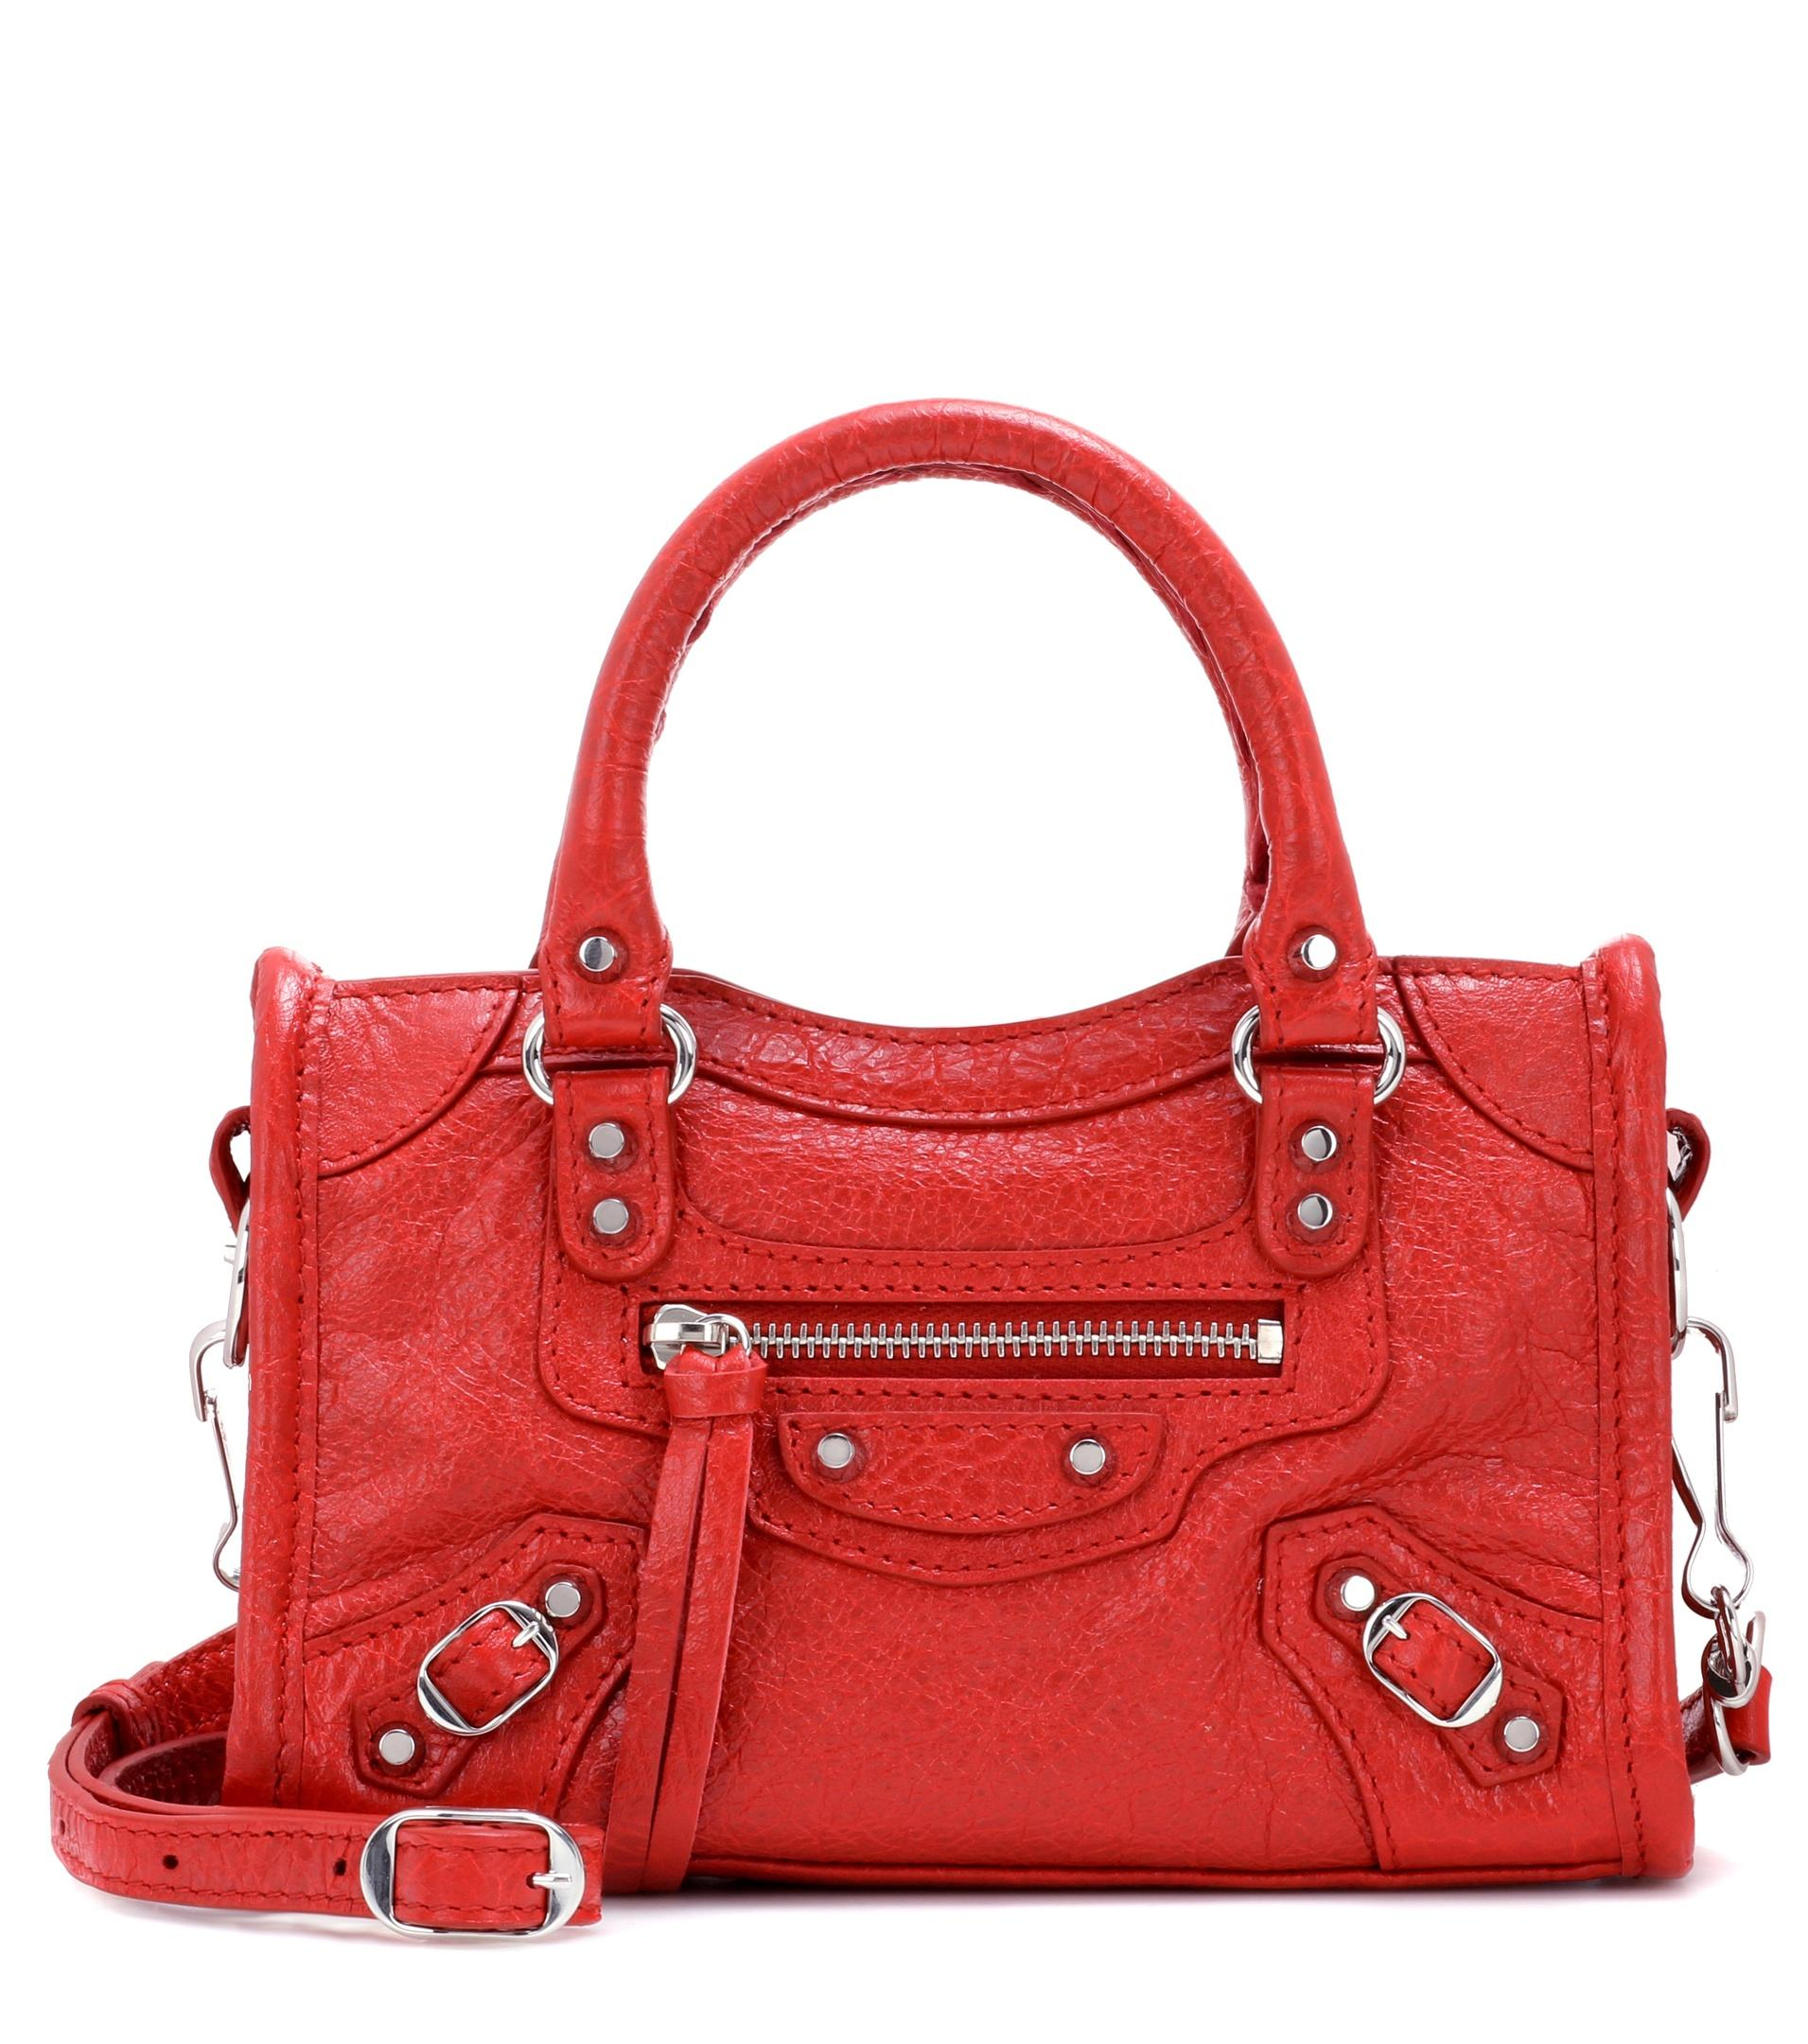 253ce328e6ea Lyst - Balenciaga Classic Nano City Shoulder Bag in Red